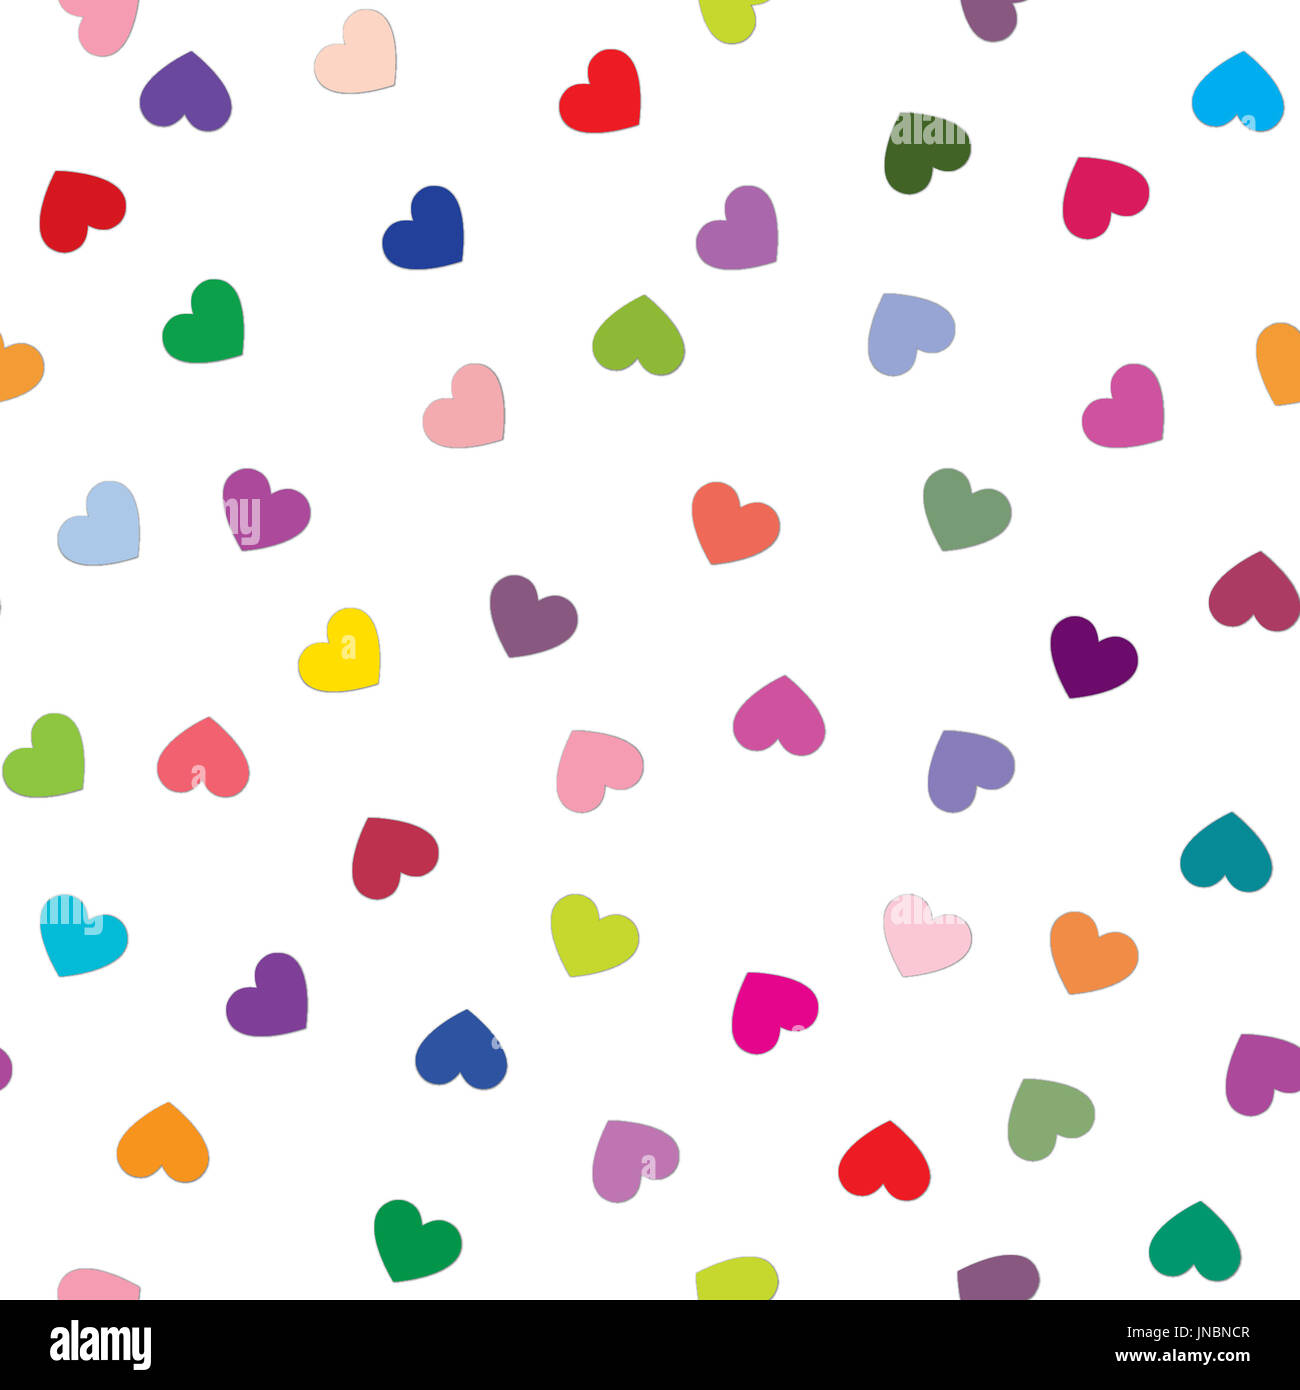 Love Heart Tiling Background Romantic Seamless Pattern With Hearts